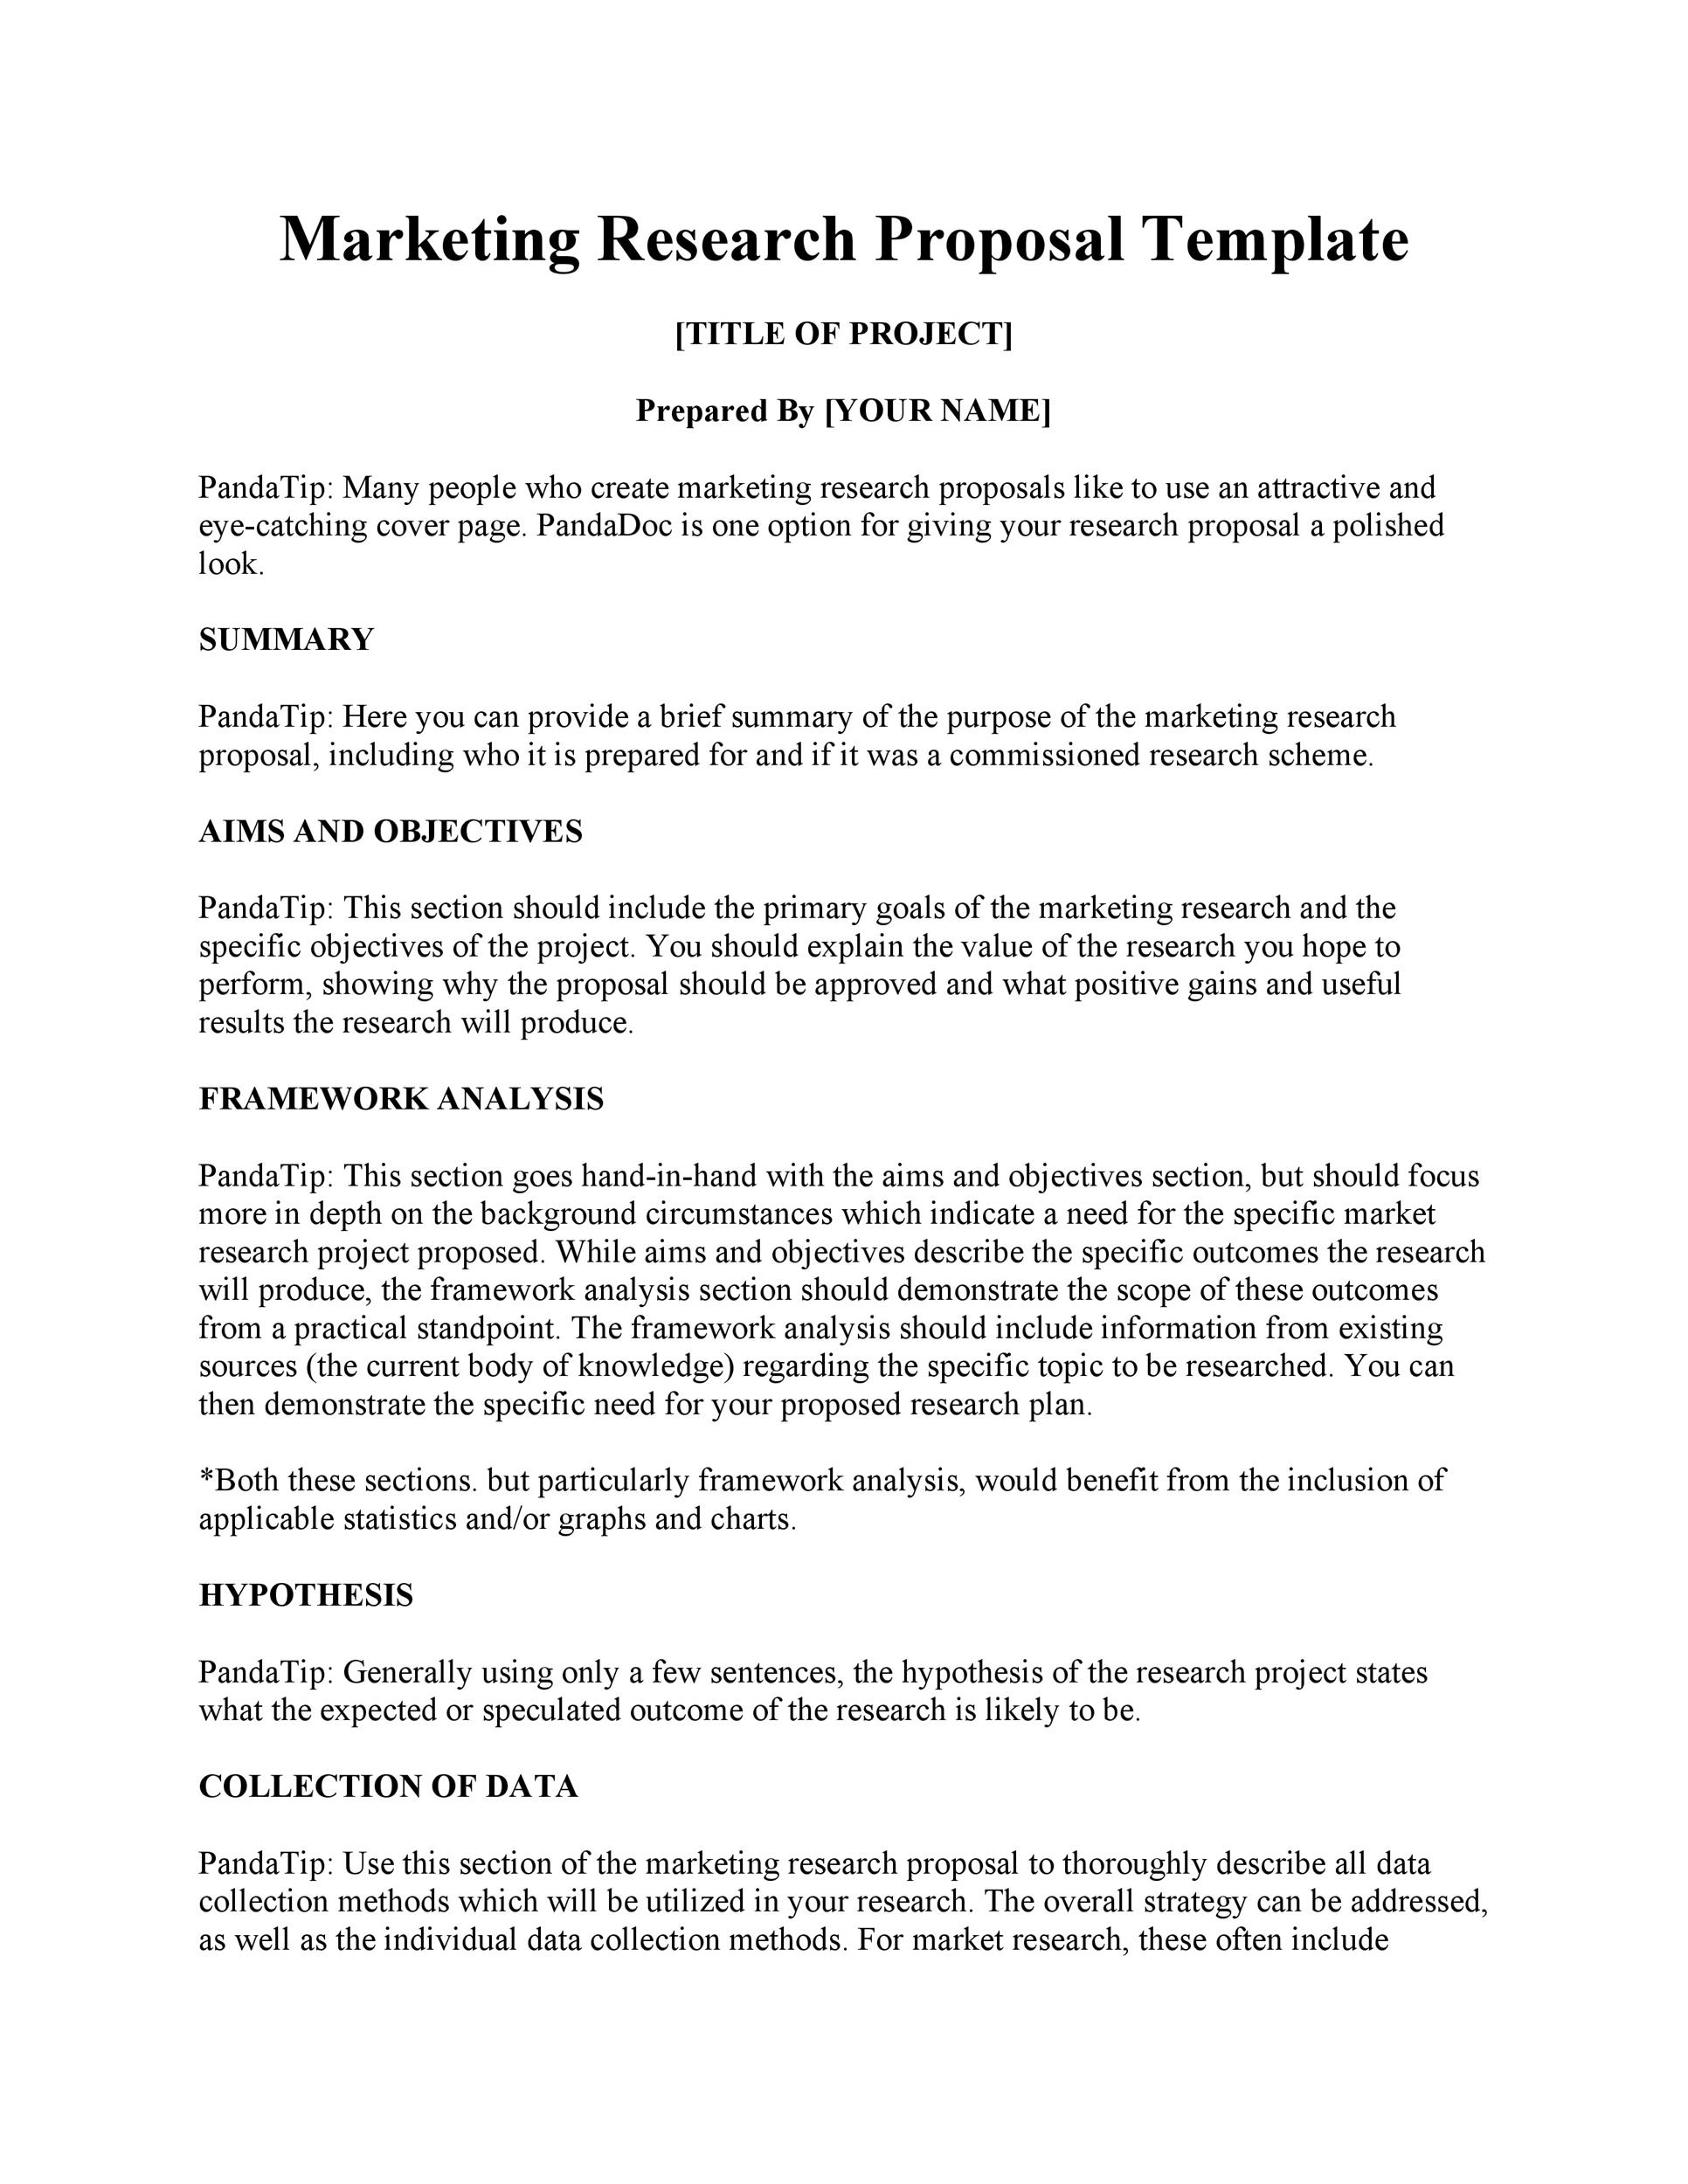 research proposals template Tips to writing a concise market research proposal an eight-page template provides a tool to help you write a concise market research proposal that explains the intent and purpose of the research.